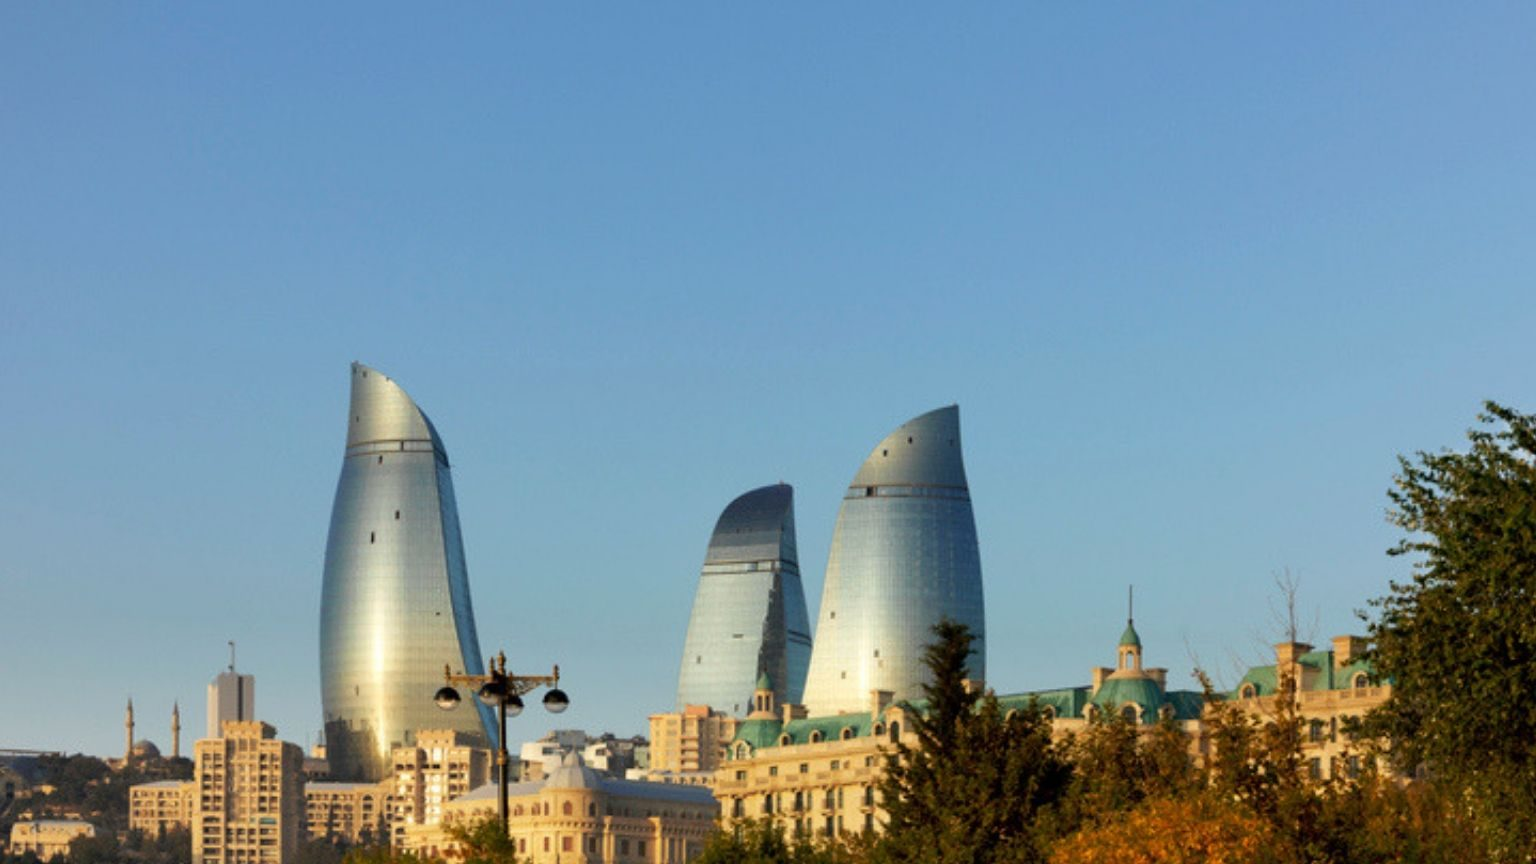 Baku Flame Towers in Azerbaijan